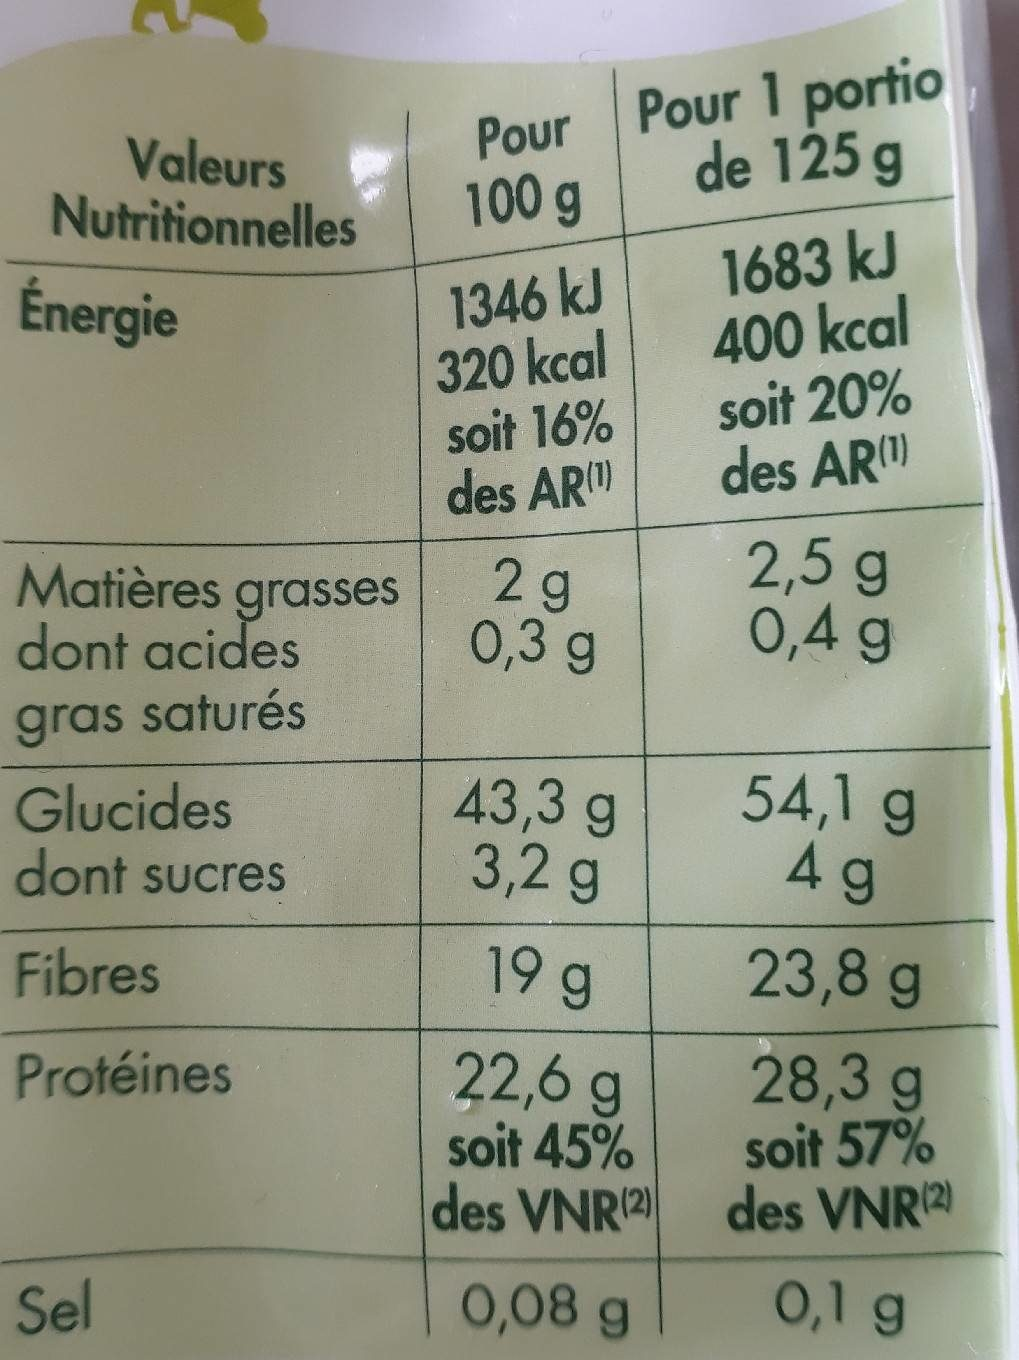 Fèves - Nutrition facts - fr